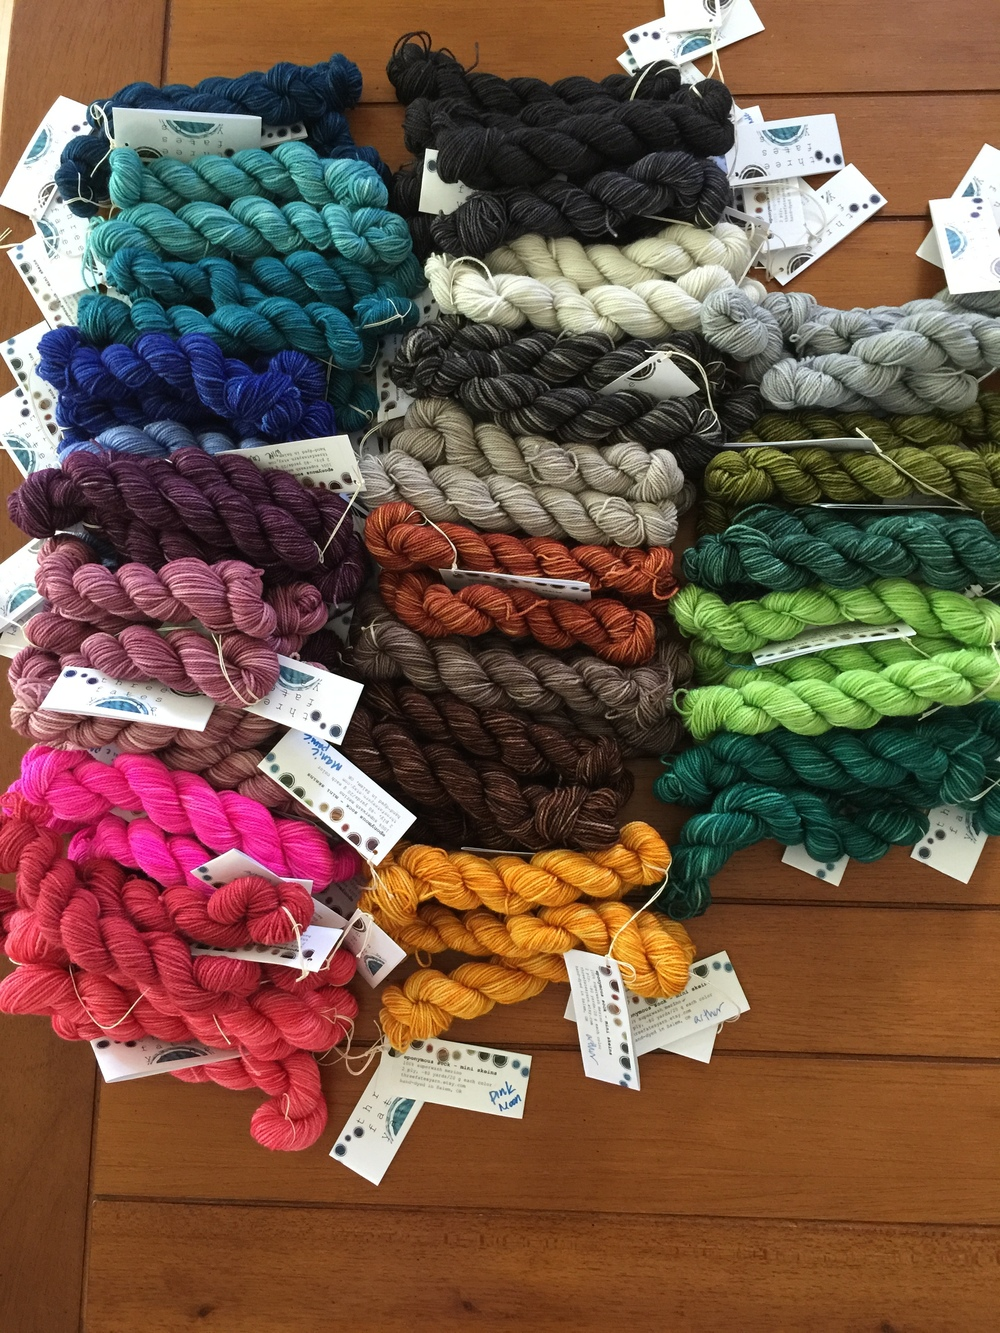 Three fates is all about story telling and has kind of an elemental theme, so the individual yarn names have been named after greek and roman mythological elements. Such as Terra Sock - Earth, Helios - Sun, Aether - Wind, Aquae - Water, etc.